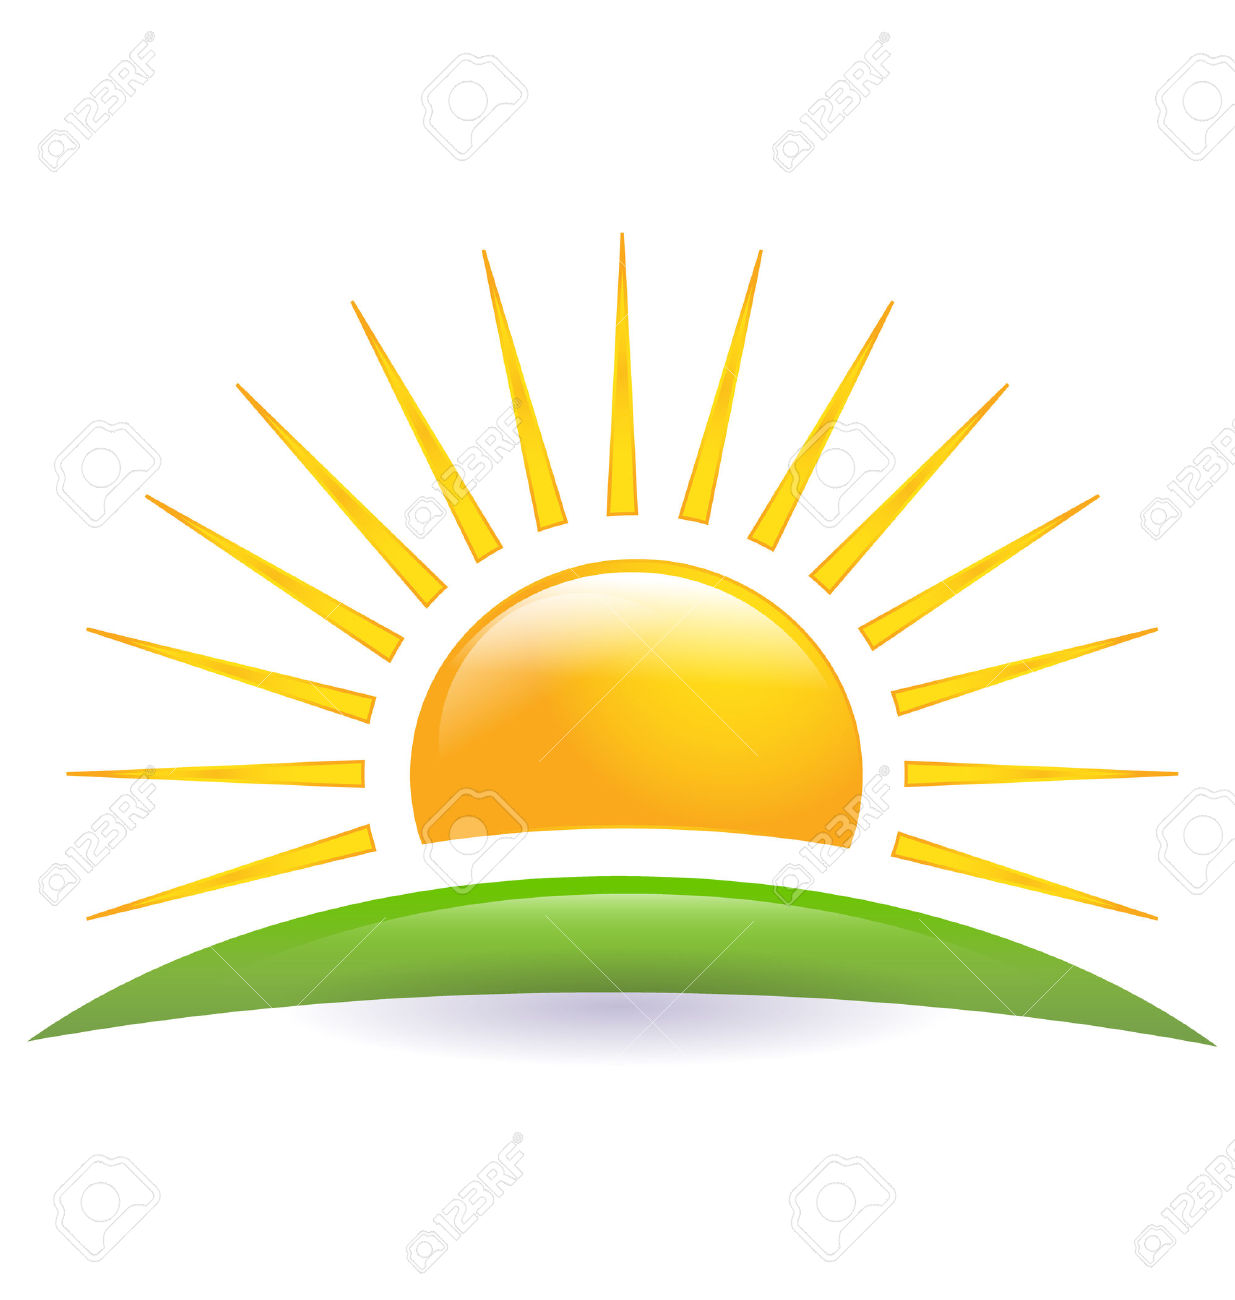 Green Hill With Sun Logo Vector Icon Royalty Free Cliparts.